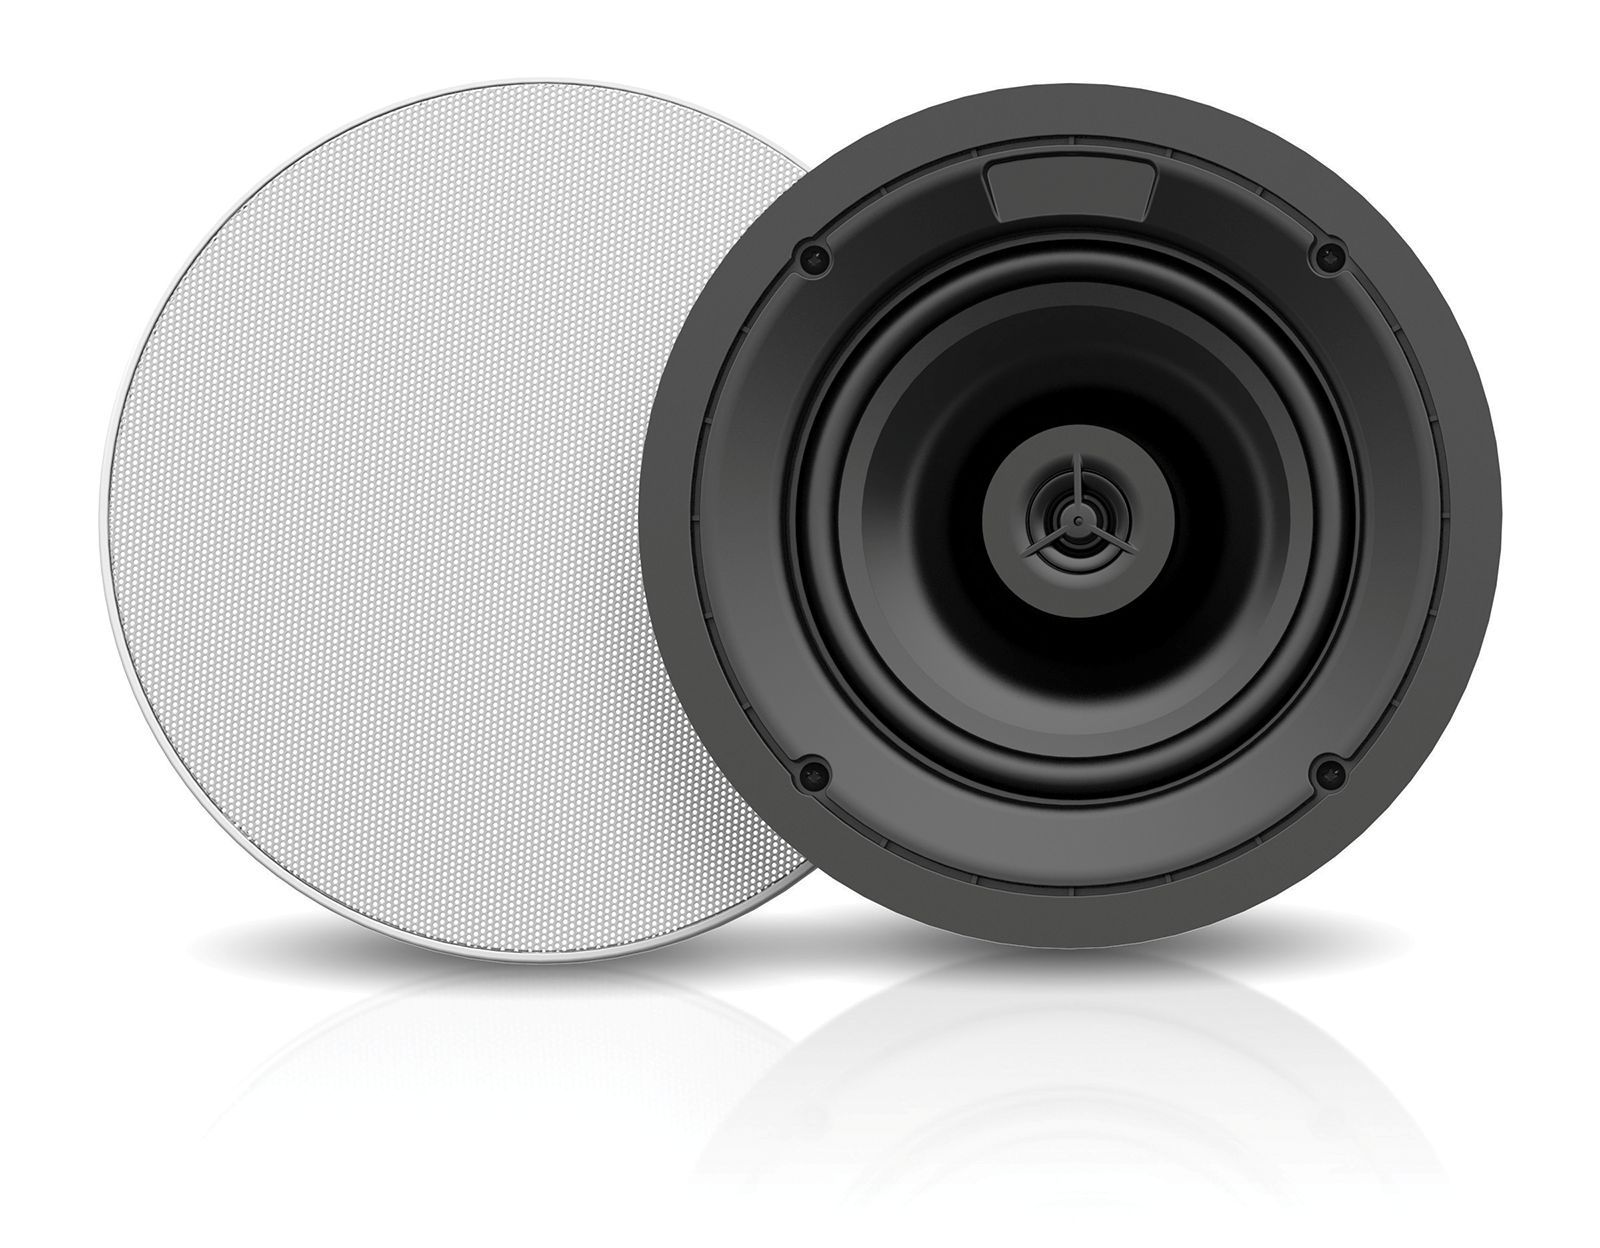 speakers ceiling. picture of icm612 6.5 inch 2-way 50w rms 8 ohm in-ceiling speaker speakers ceiling